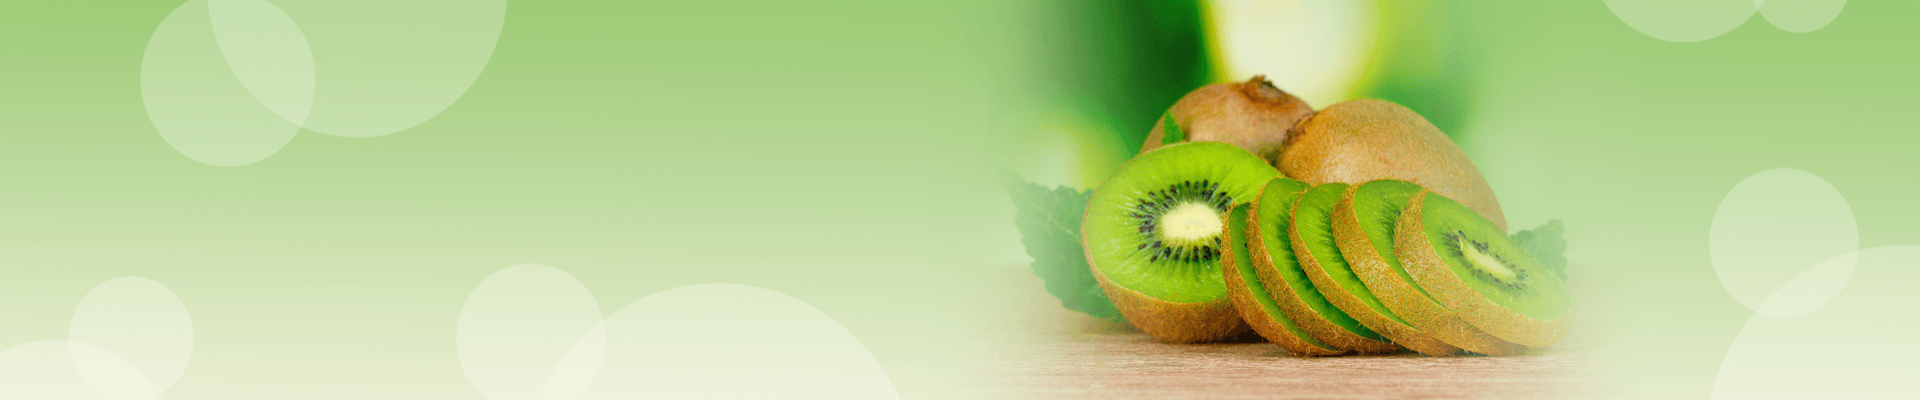 Header Image Kiwi Fruit